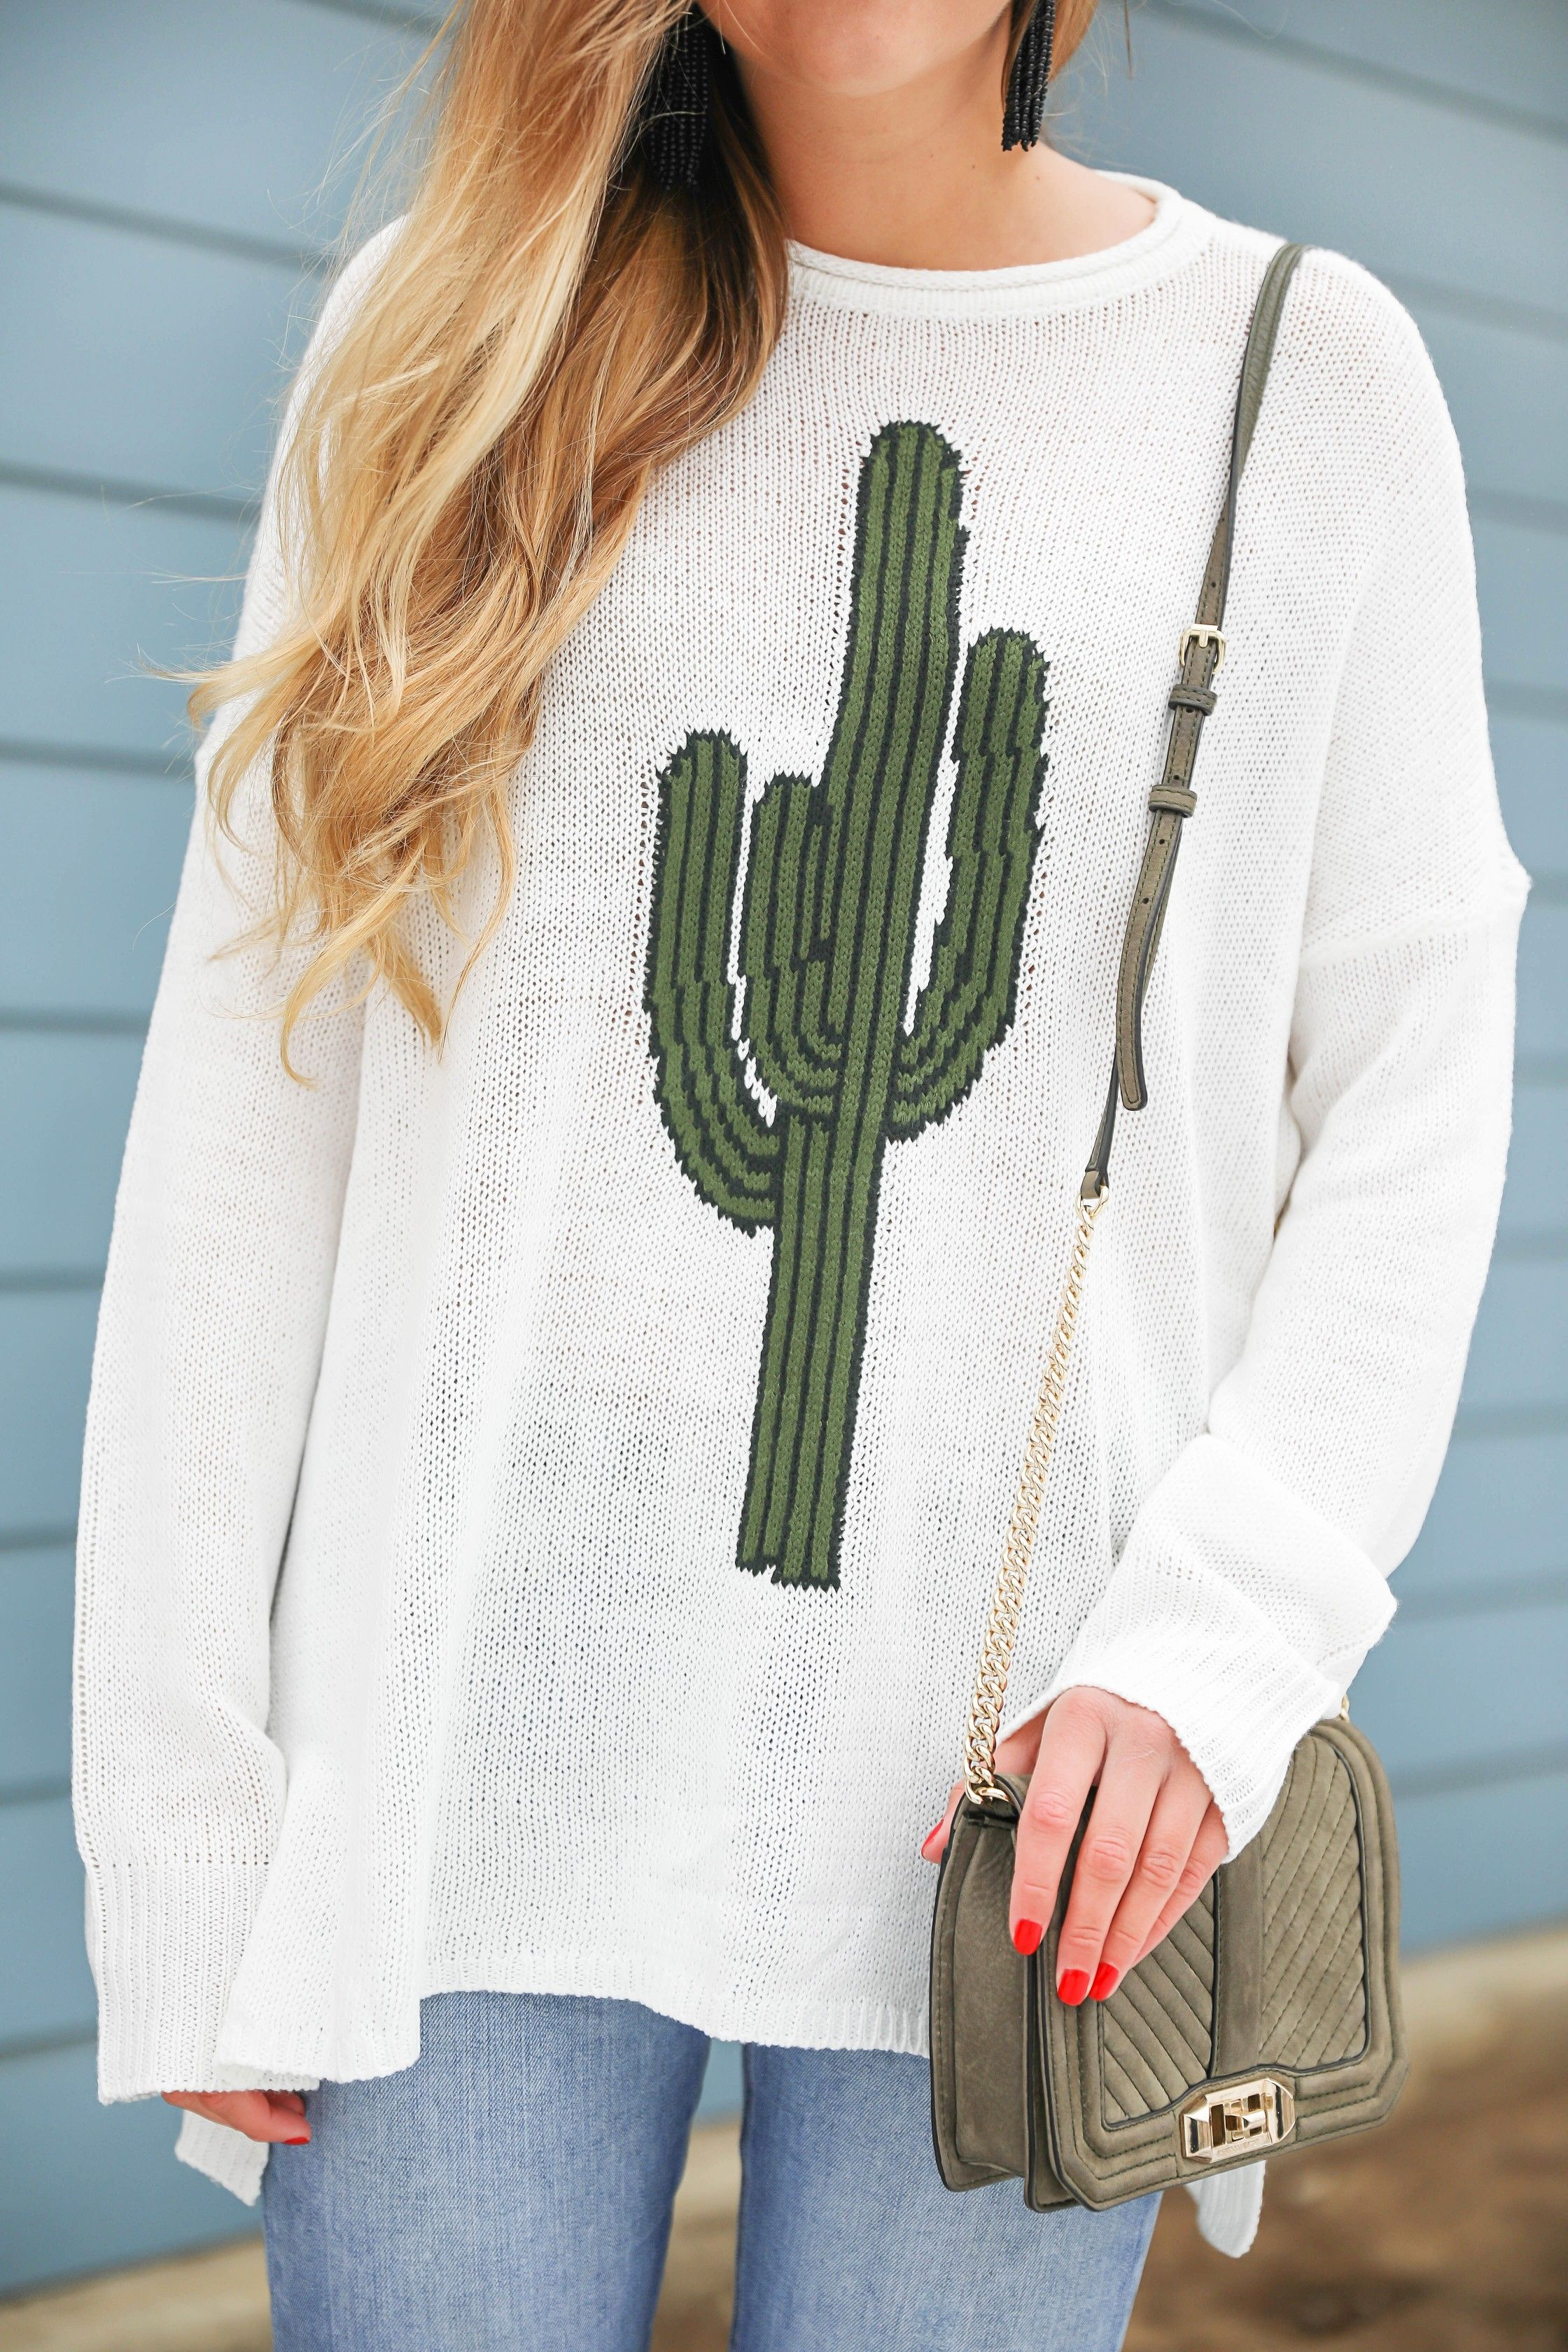 Super cute cactus sweater for spring and summer! This sweater is by Show Me  Your Mumu. I love their spring cactus line 24fd1cb25